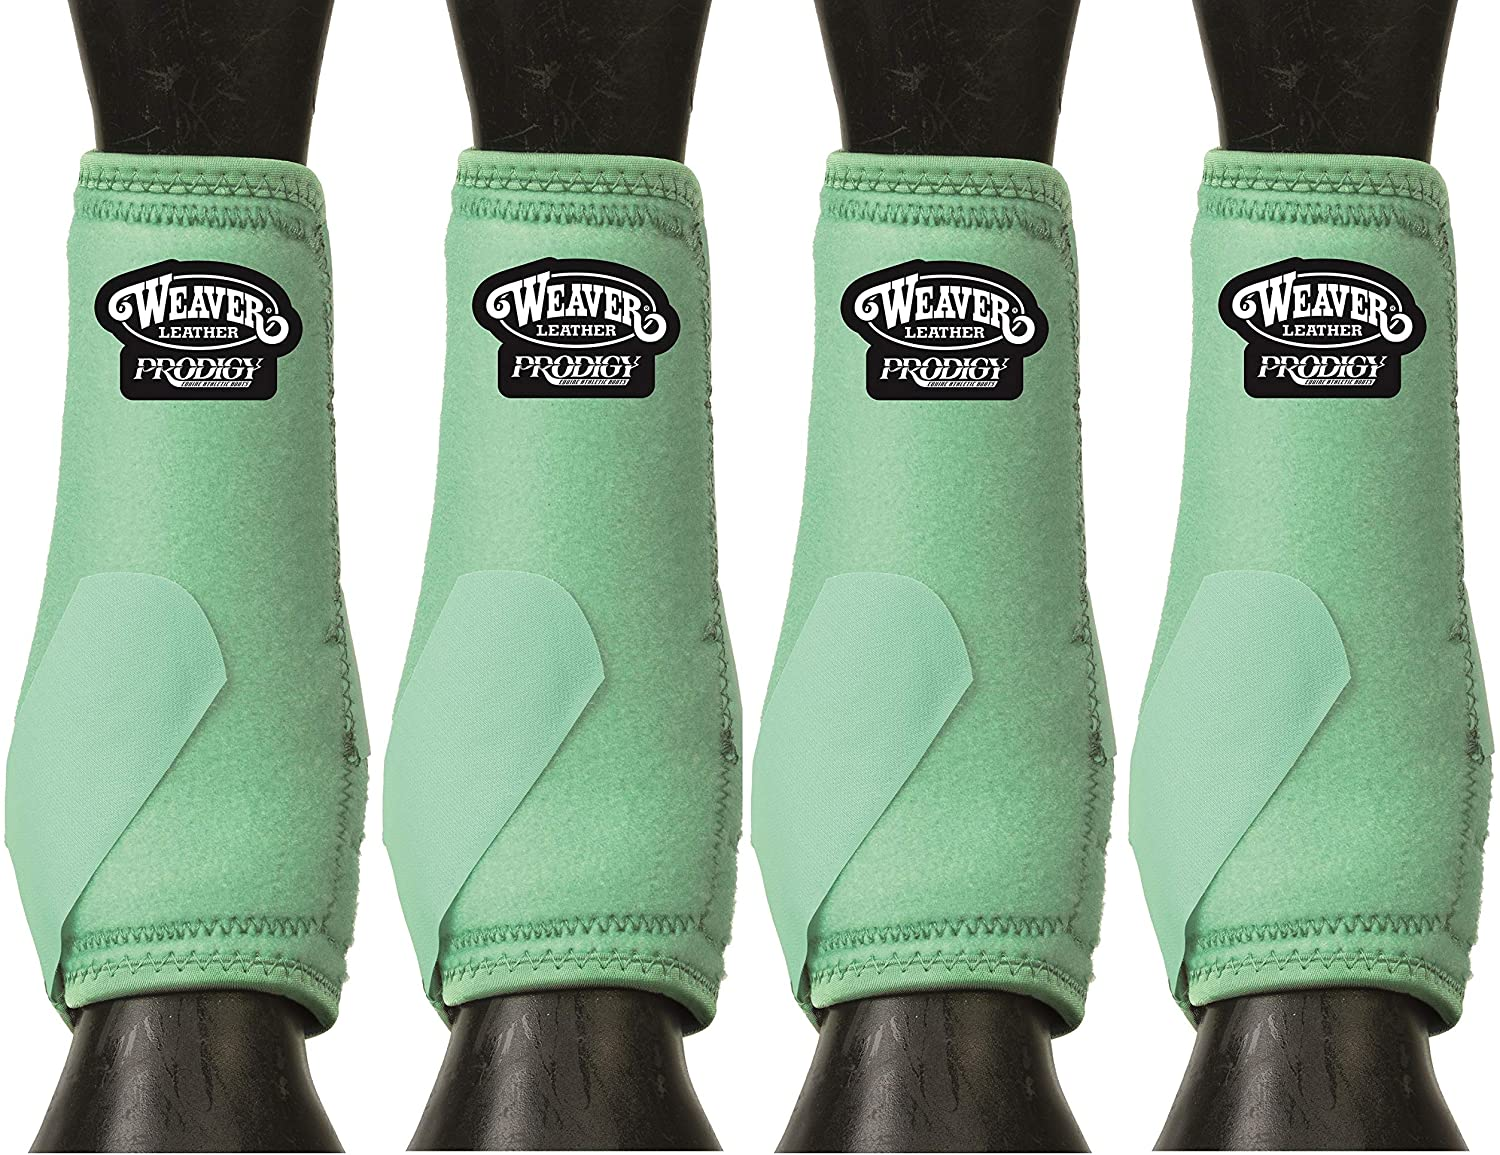 Weaver Prodigy Performance Boots 4 Pack